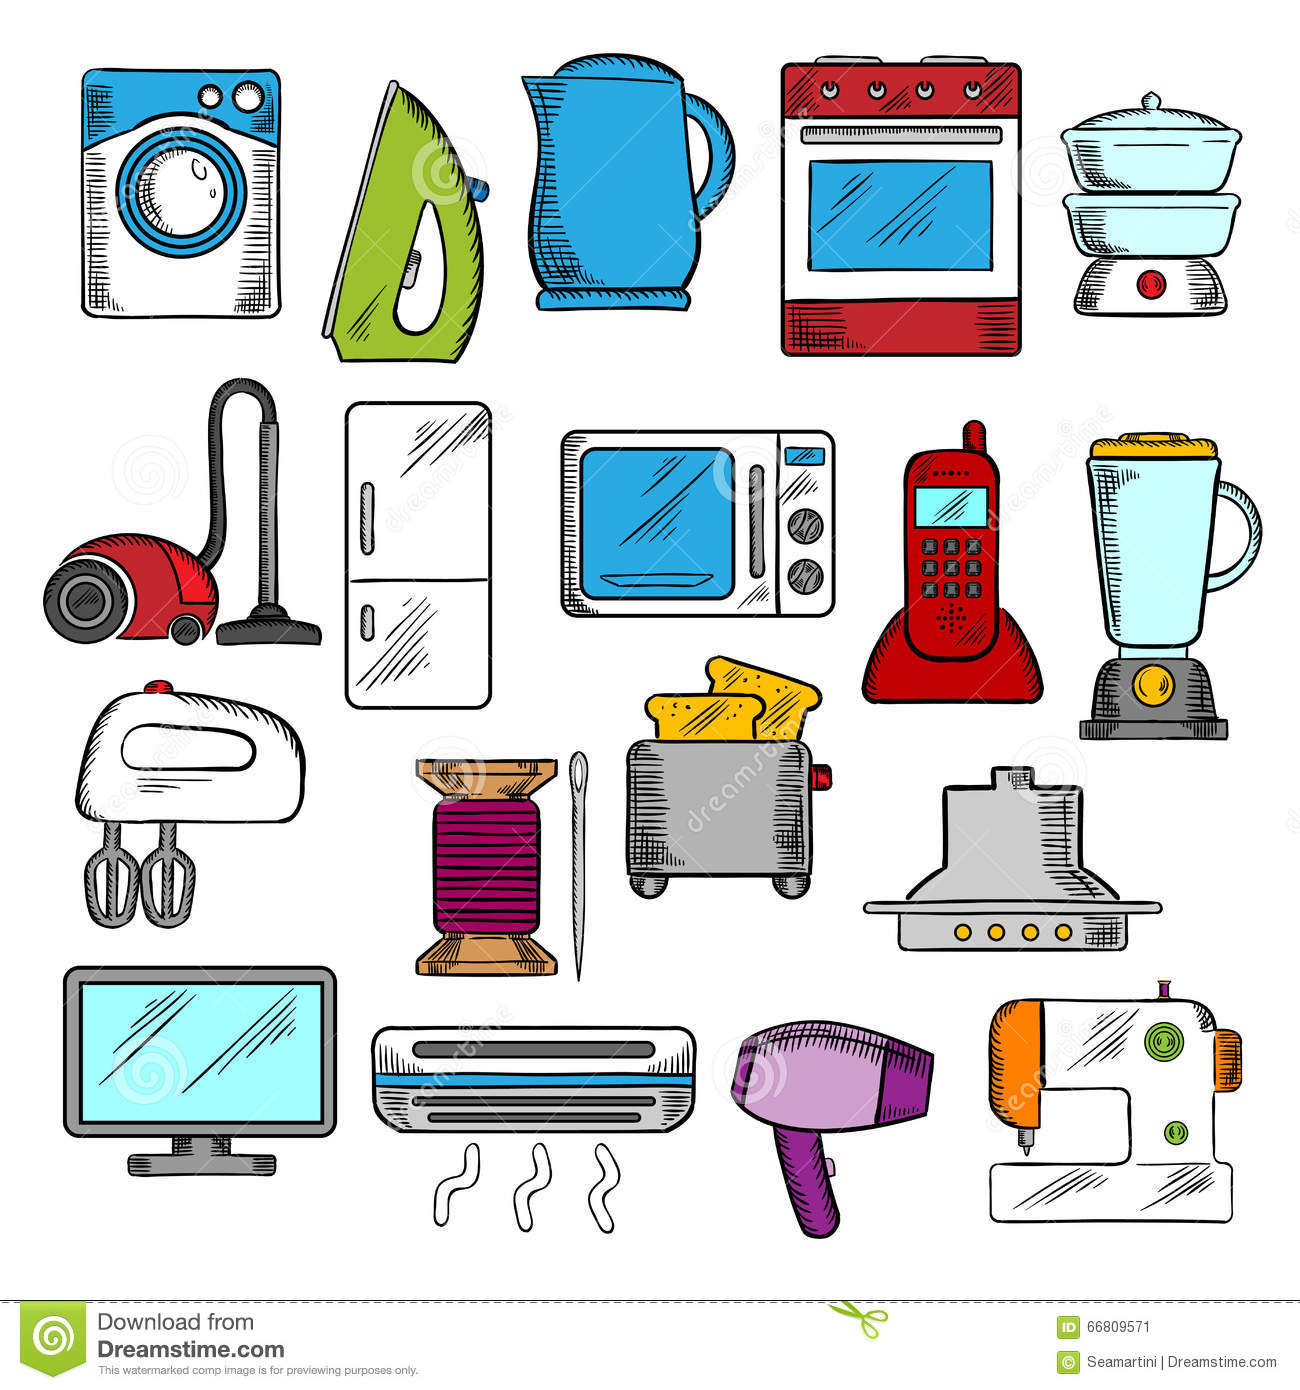 Kitchen Appliances Clip Art ~ Home and kitchen appliances icons stock vector